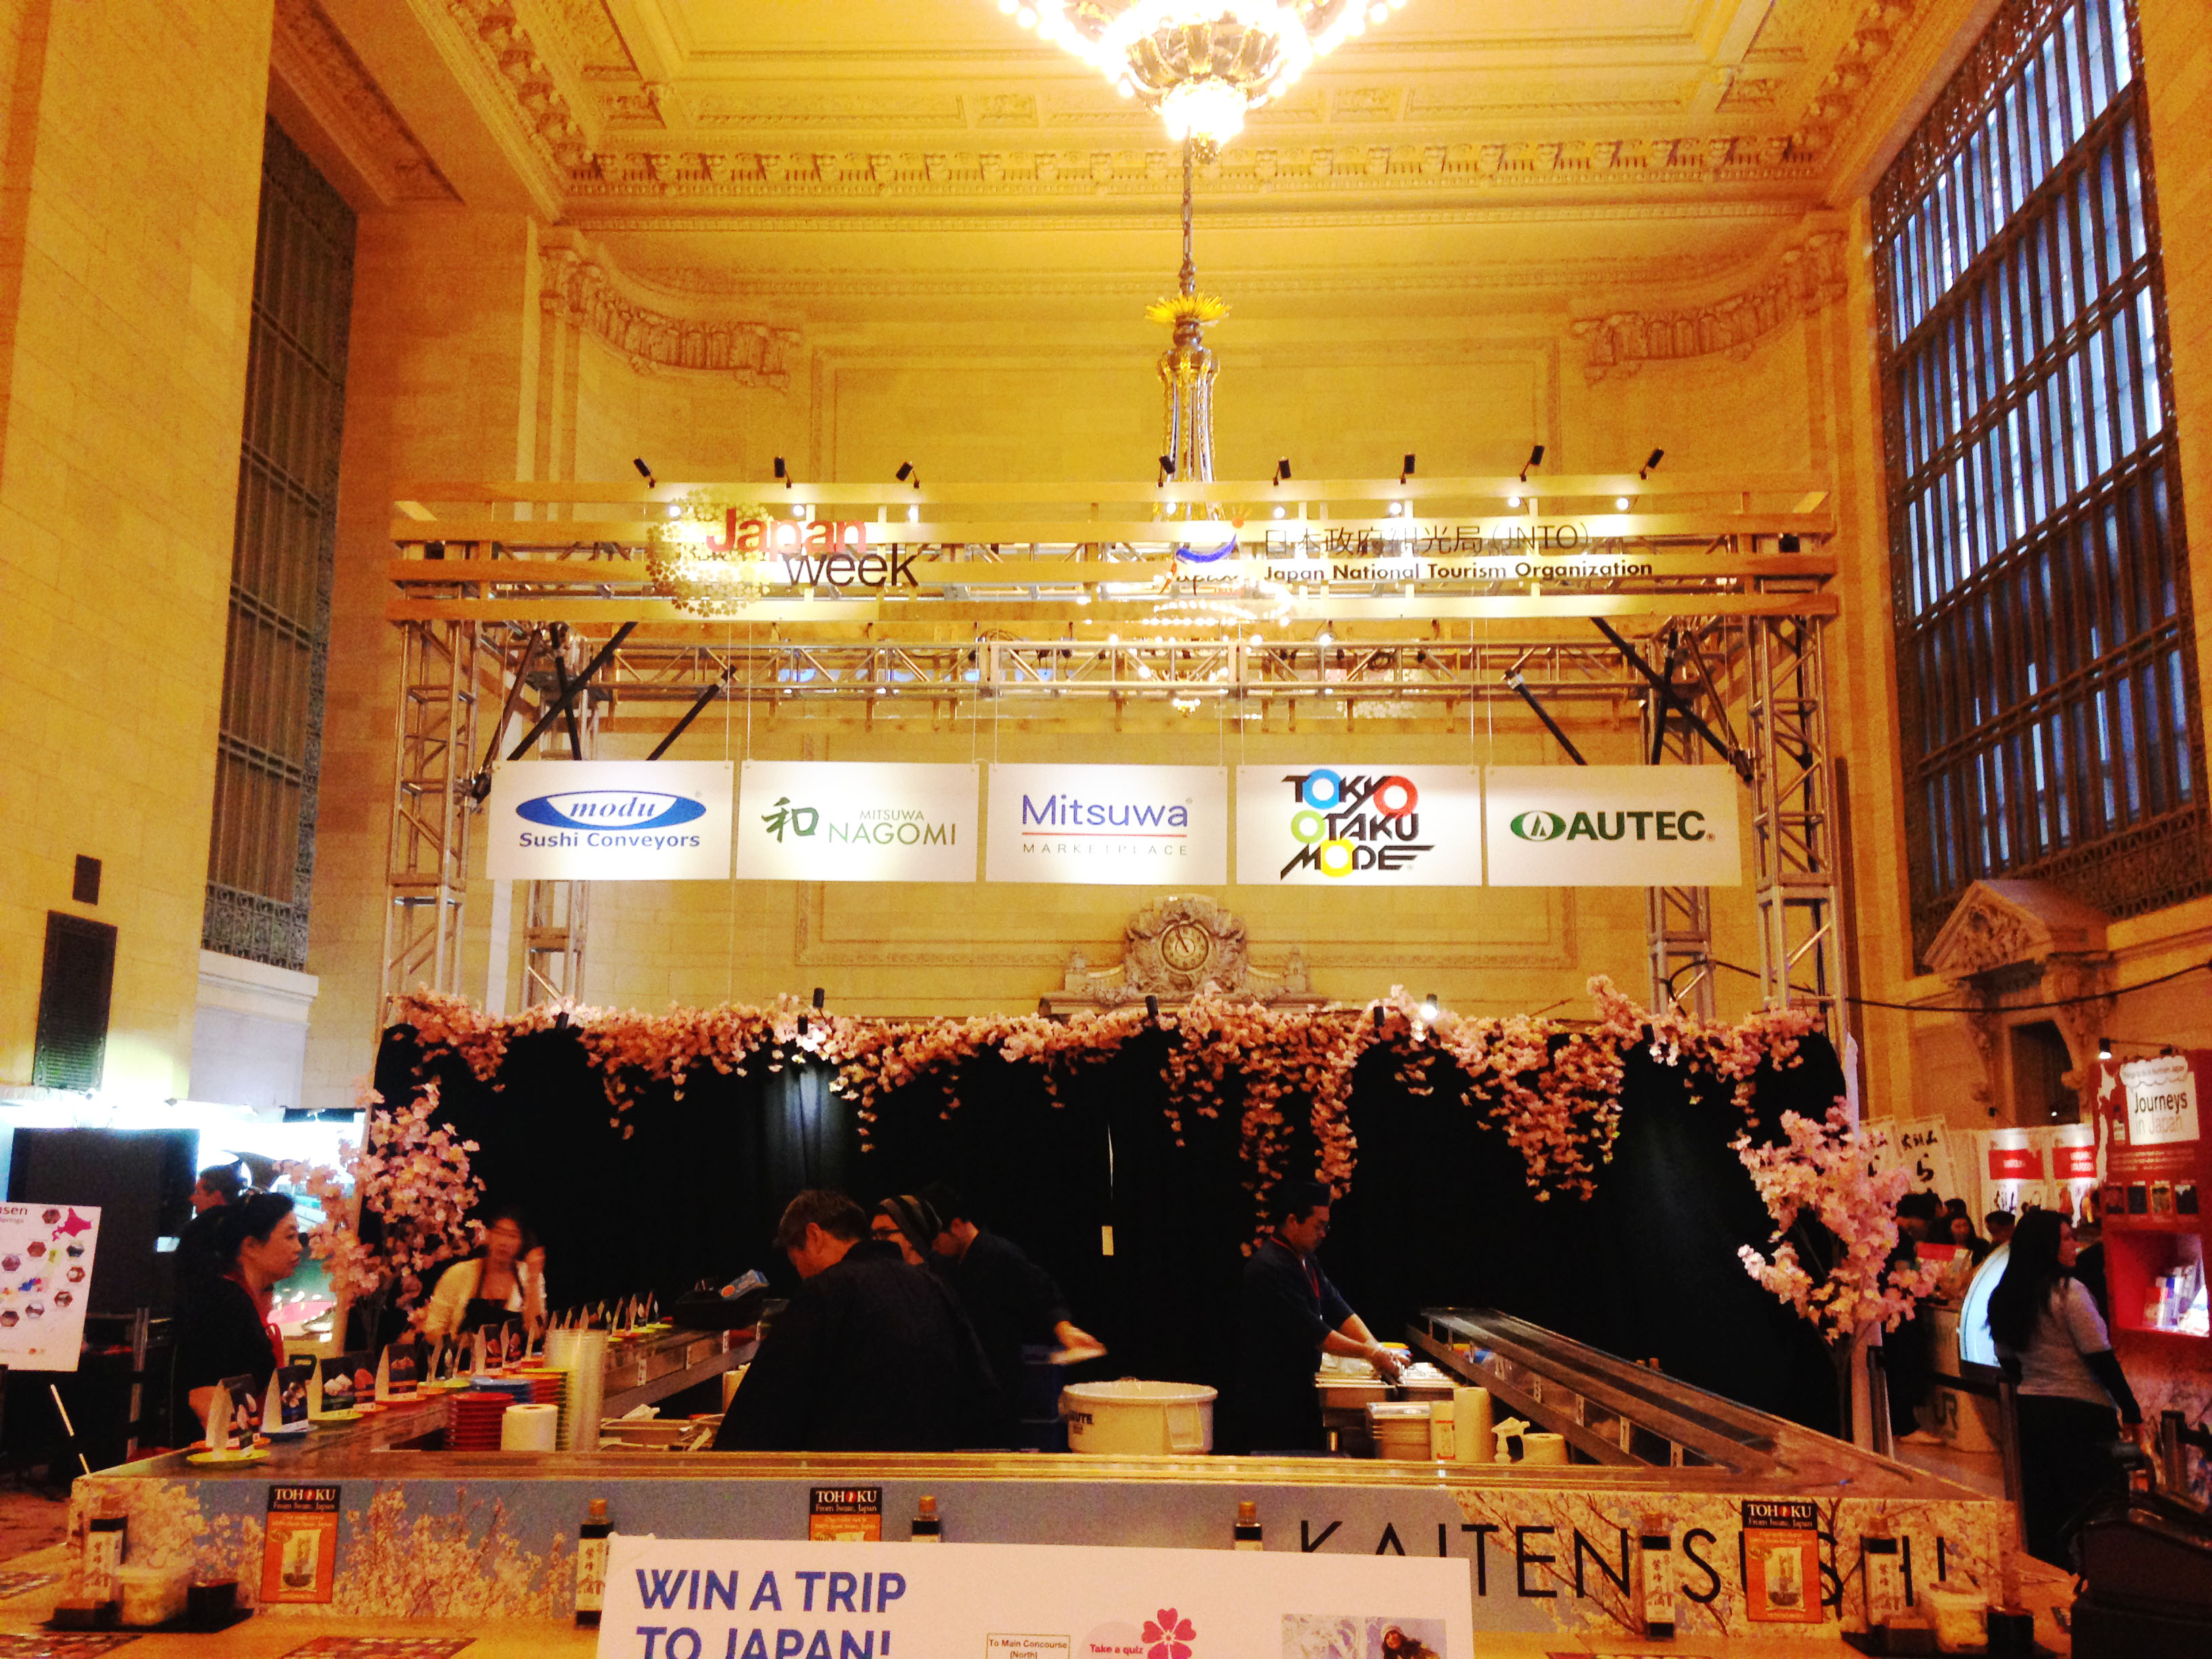 By Luis Vazquez It was three days of cultural education at Grand Central Terminal. What...